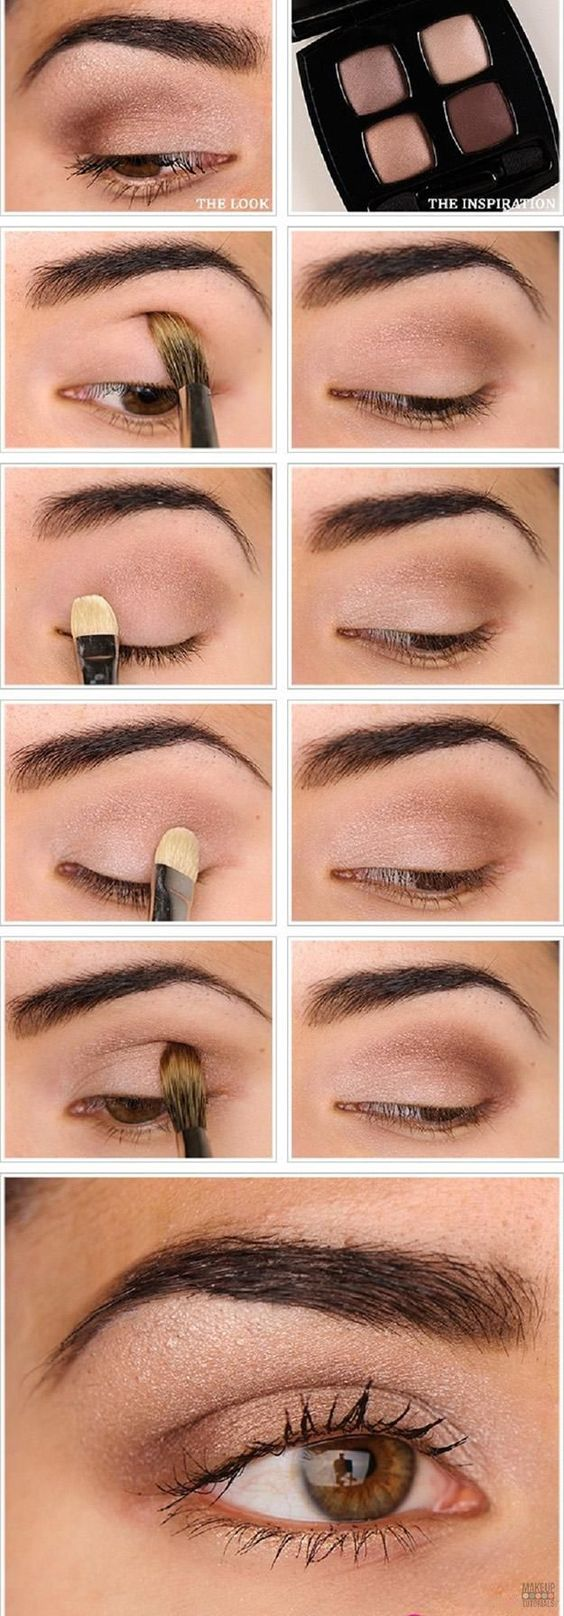 Eyeshadow Tutorials: Everyday Makeup. DIY tutorial for natural look, perfect makeup for brown eyes or for wedding. Beauty Tips and Tricks. | Makeup Tutorials http://makeuptutorials.com/everyday-natural-makeup-tutorials/: